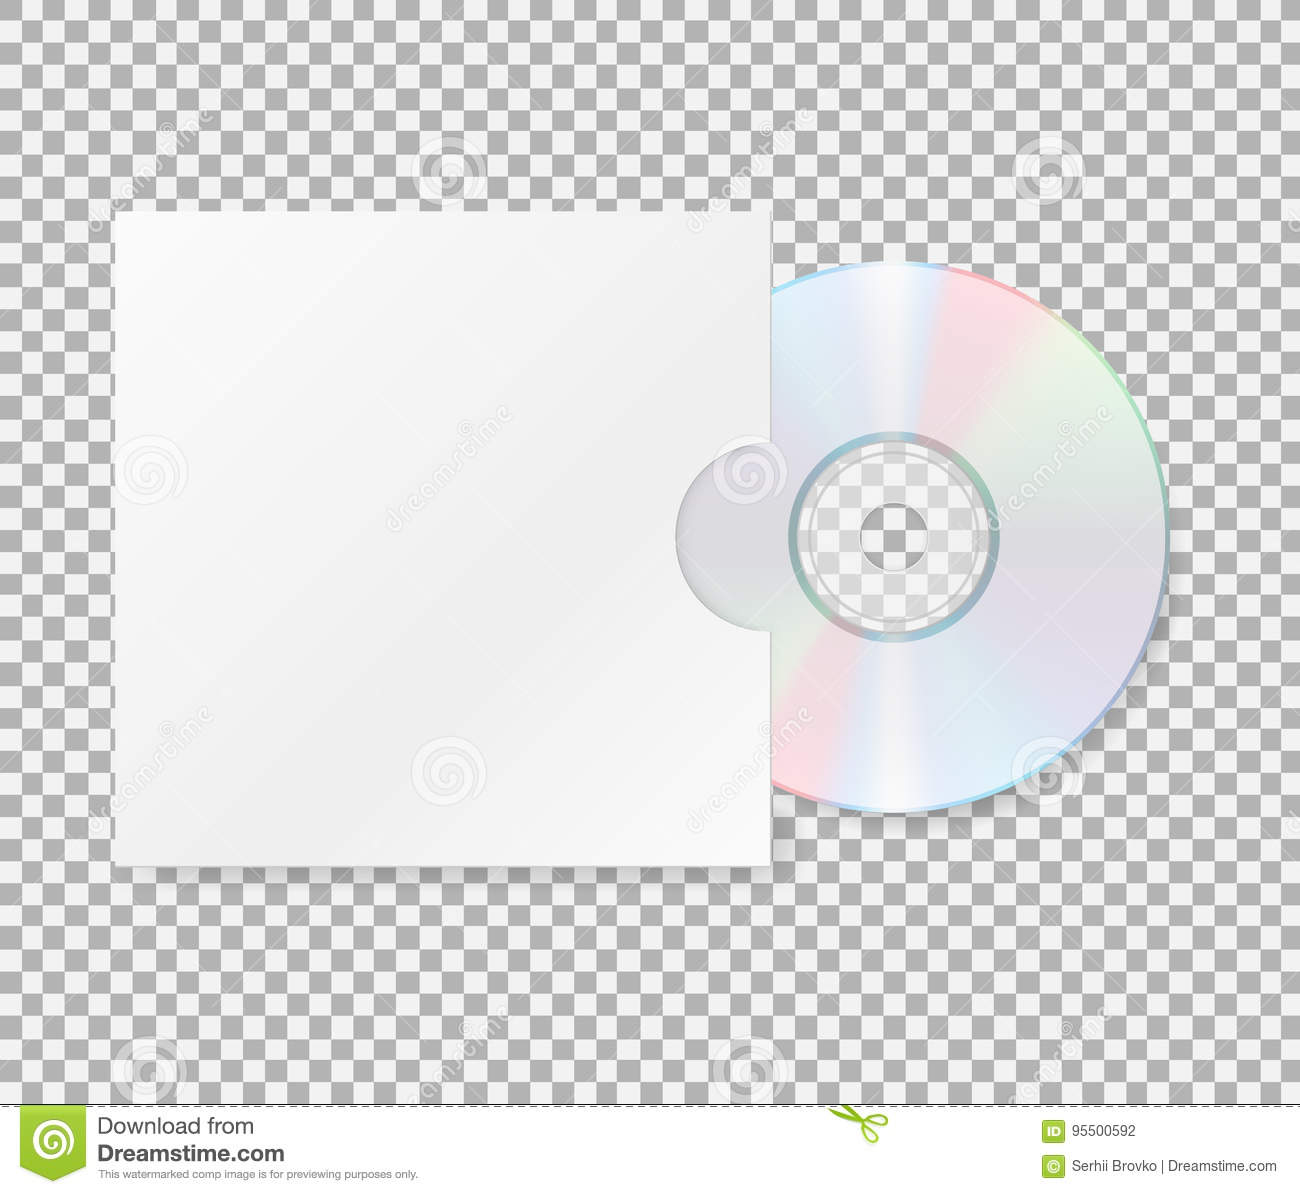 Realistic Cd With Cover. Close Up Of A Cd Dvd Disc.Blank